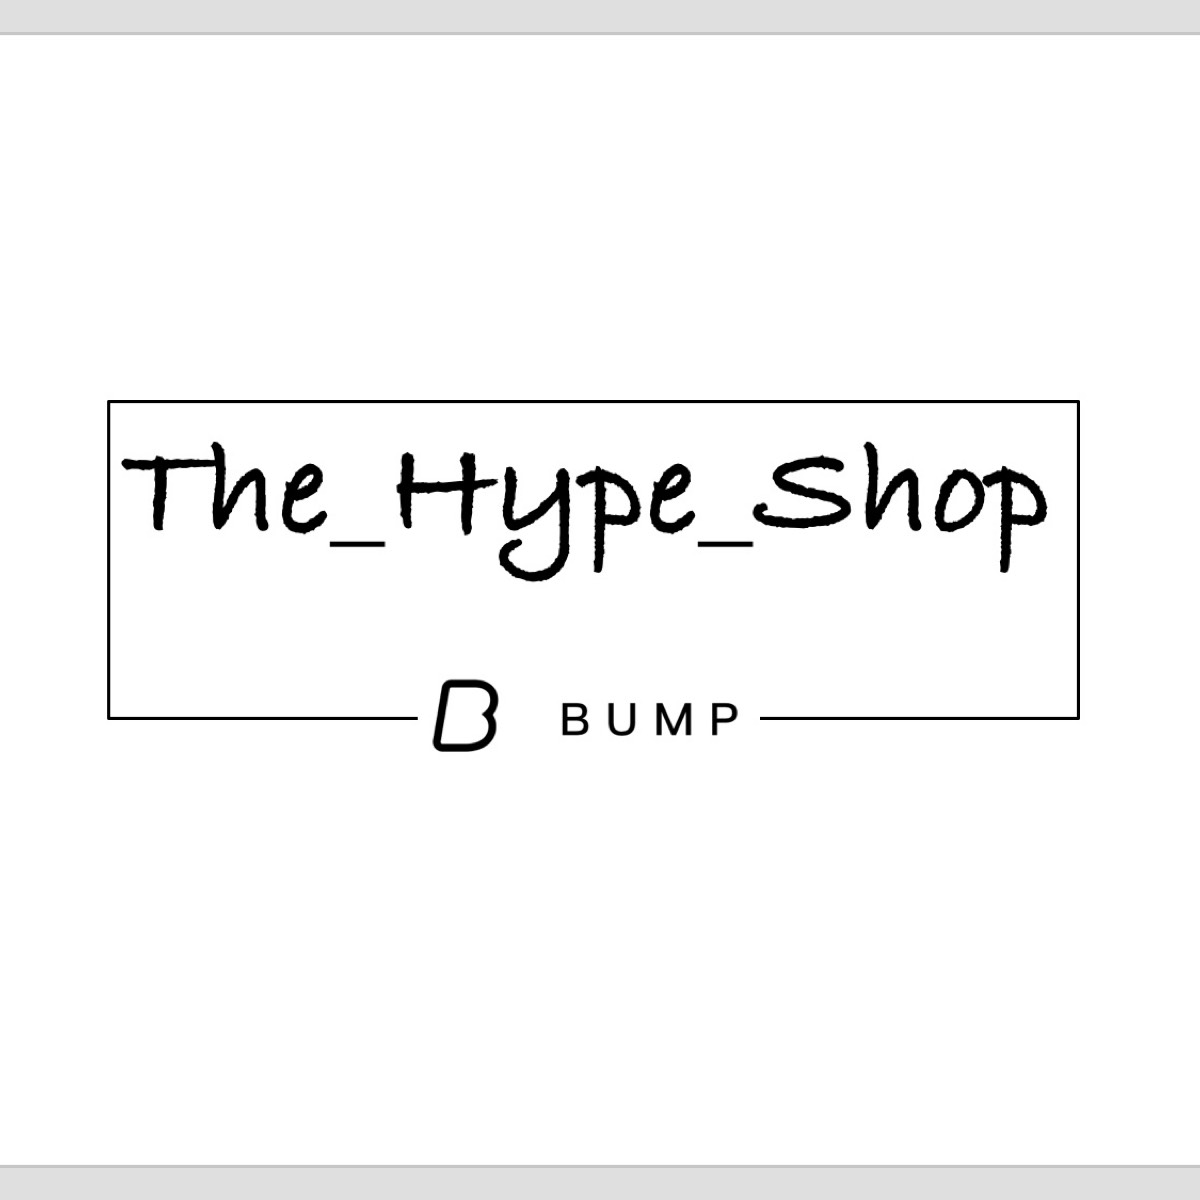 Bump profile picture for @the_hype_shop